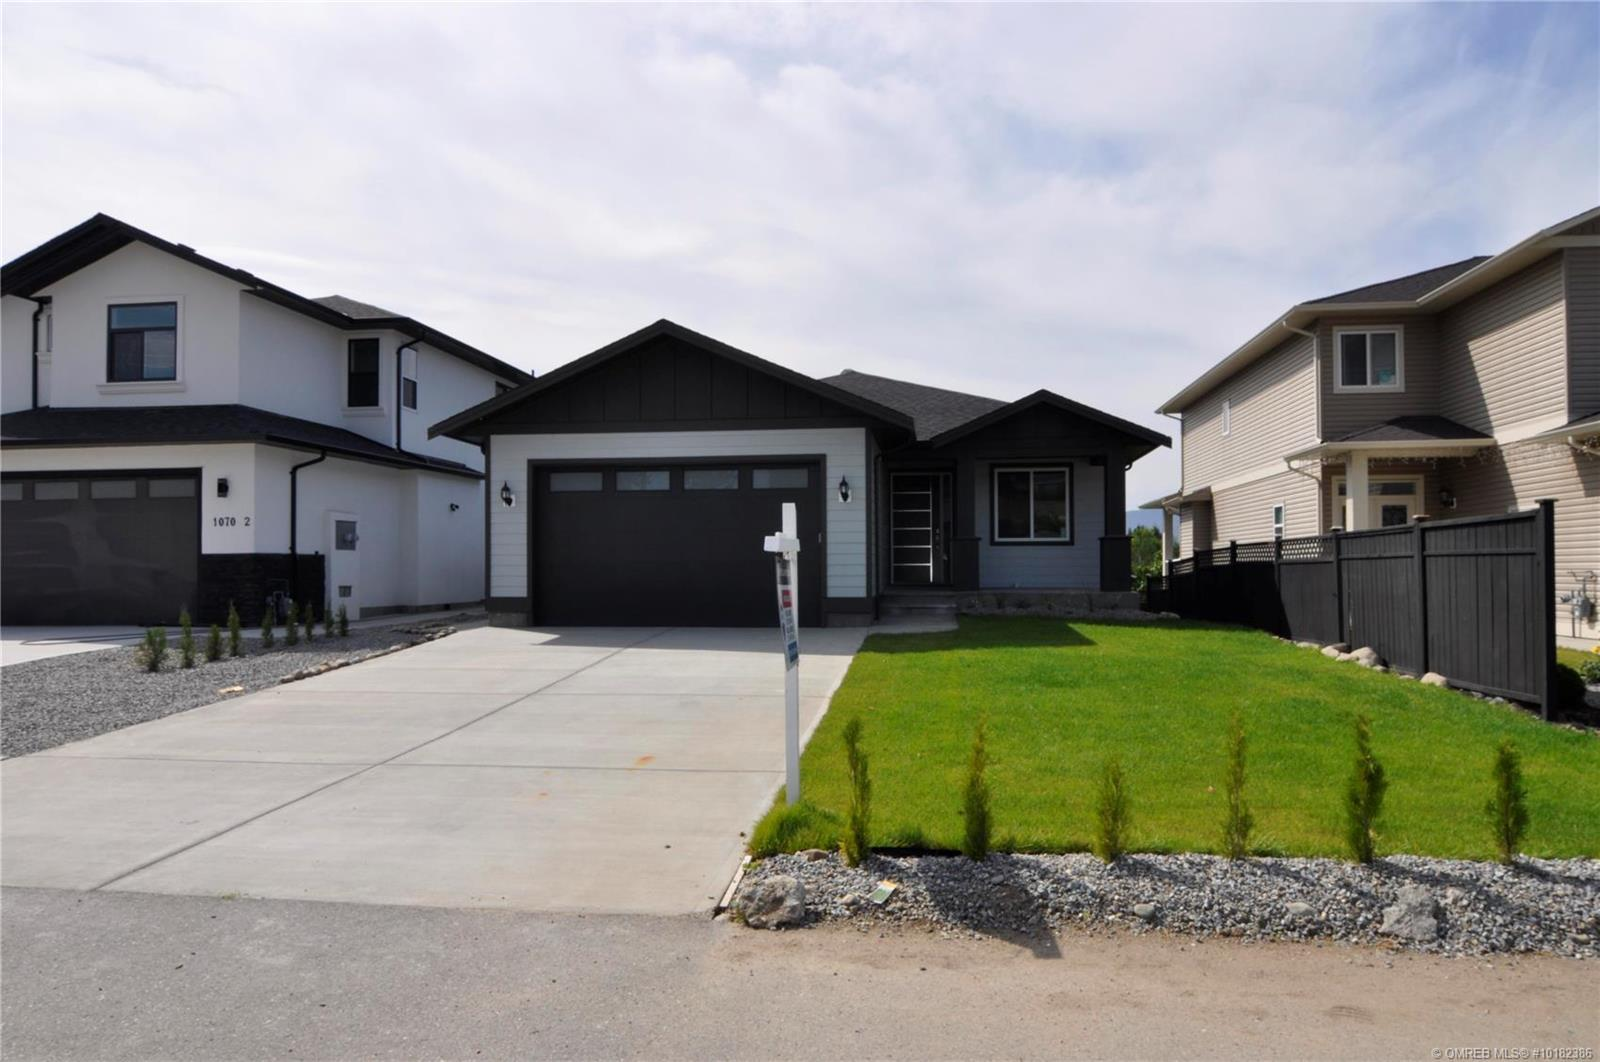 Removed: 1060 Hollywood Road South, Kelowna, BC - Removed on 2019-10-14 04:15:17